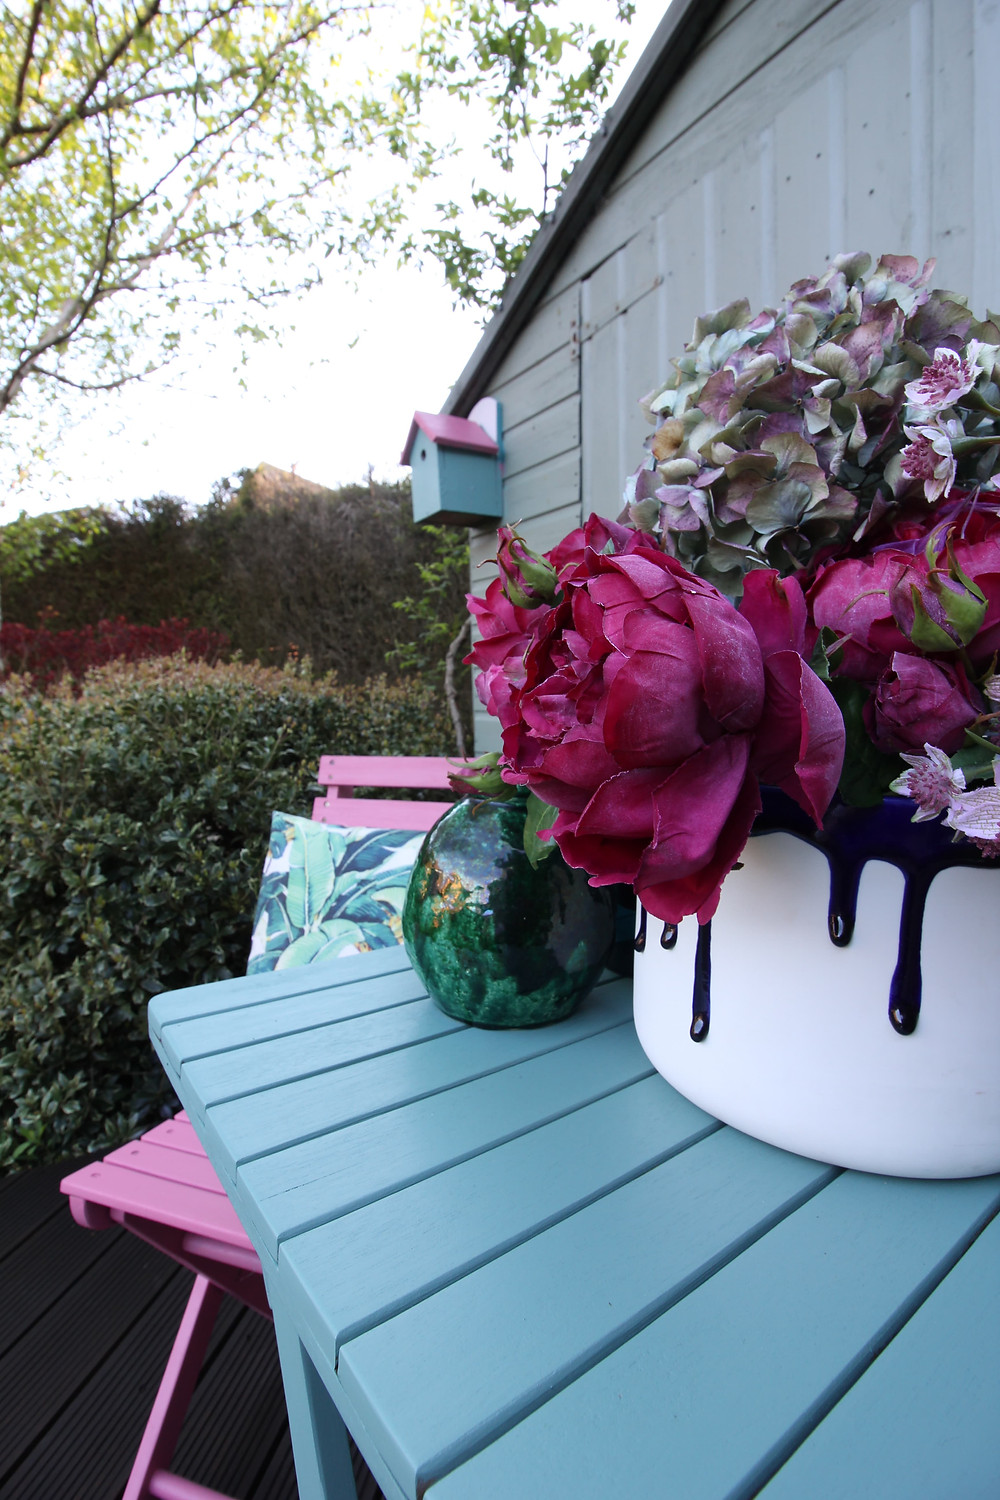 A shed painted slate by Ronseal. A bistrot set with pink and green wooden furniture and flowers in a vase